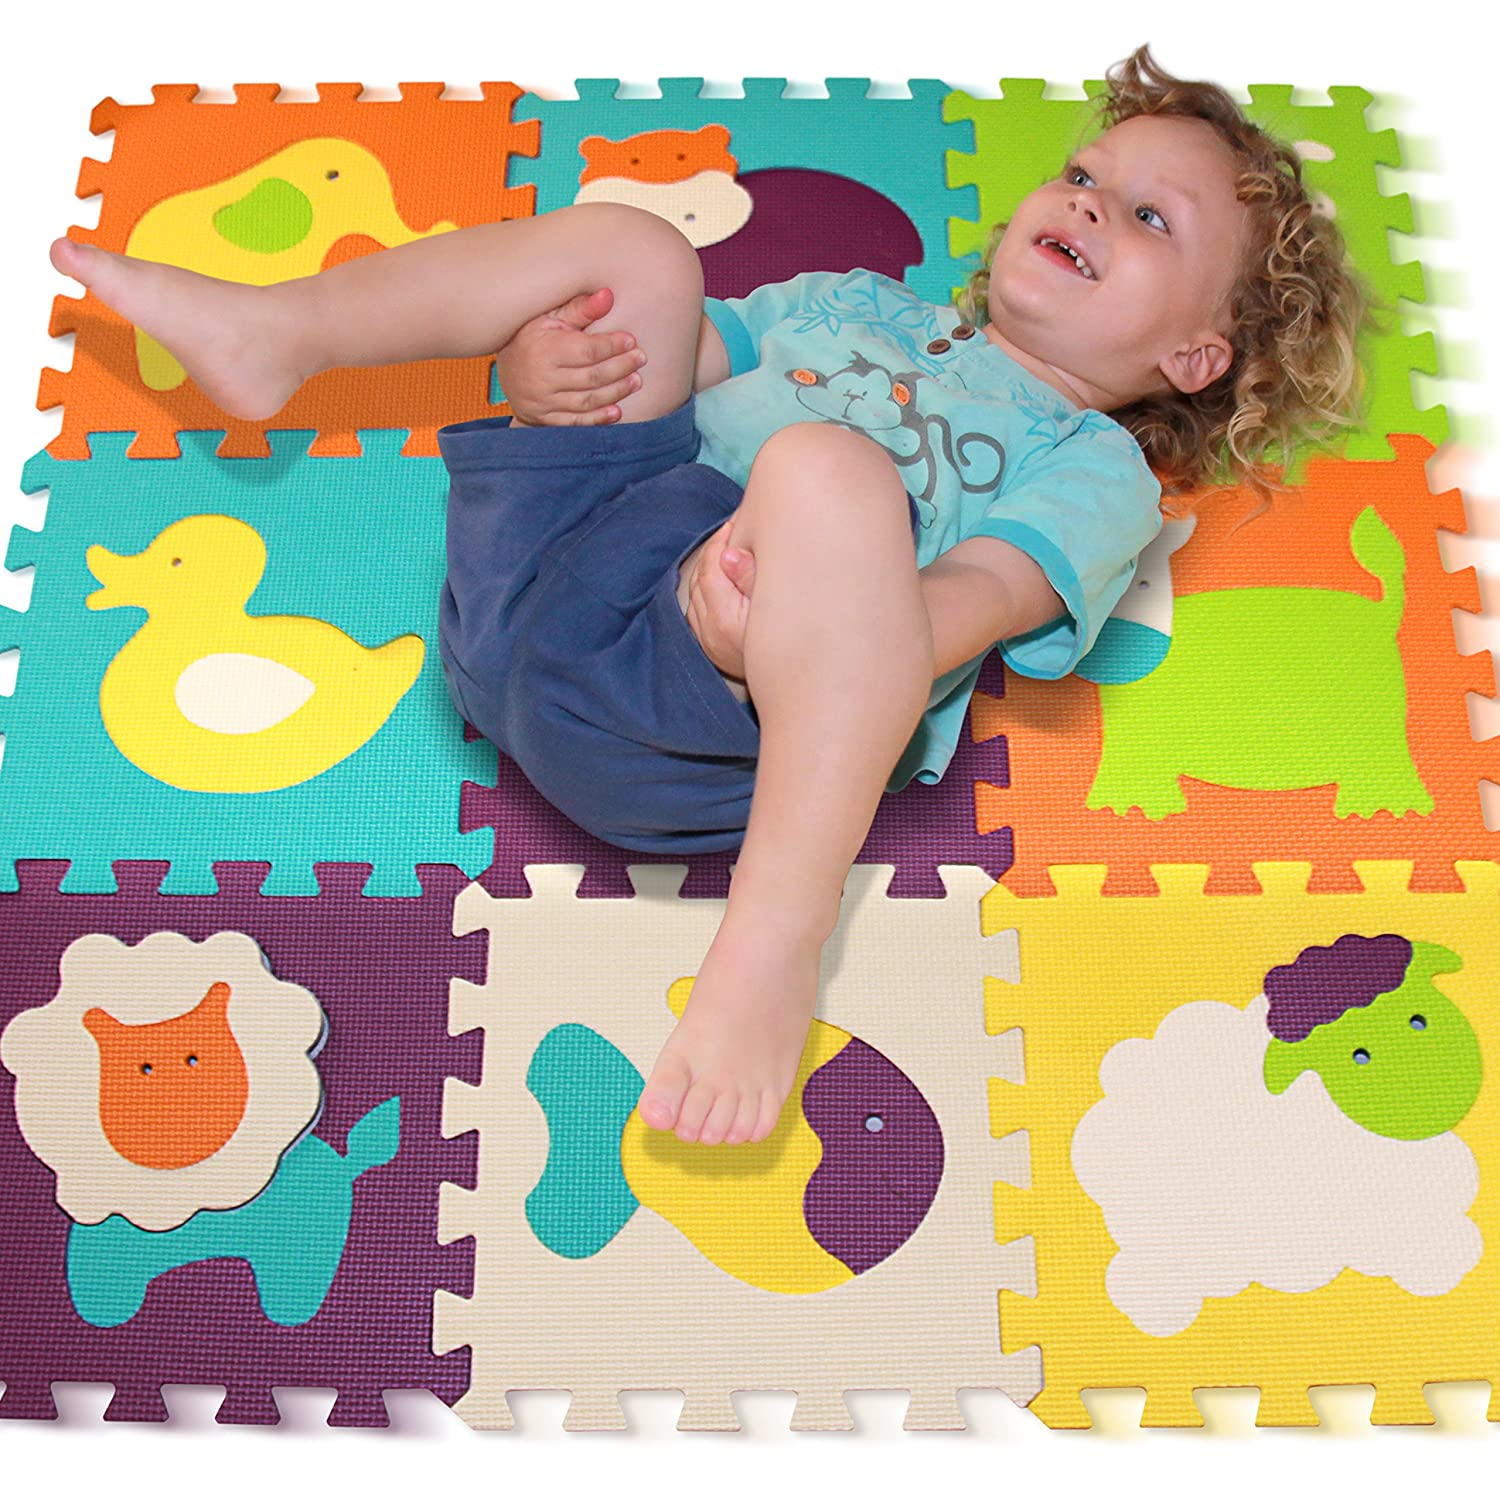 Foam Puzzle Play Mat Tomi Baby Playmat with 9 Soft Interlocking Floor Tiles for Infants Toddlers and Kids Great Mats for Crawling and Playing Vibrant Animal Shapes Non Toxic